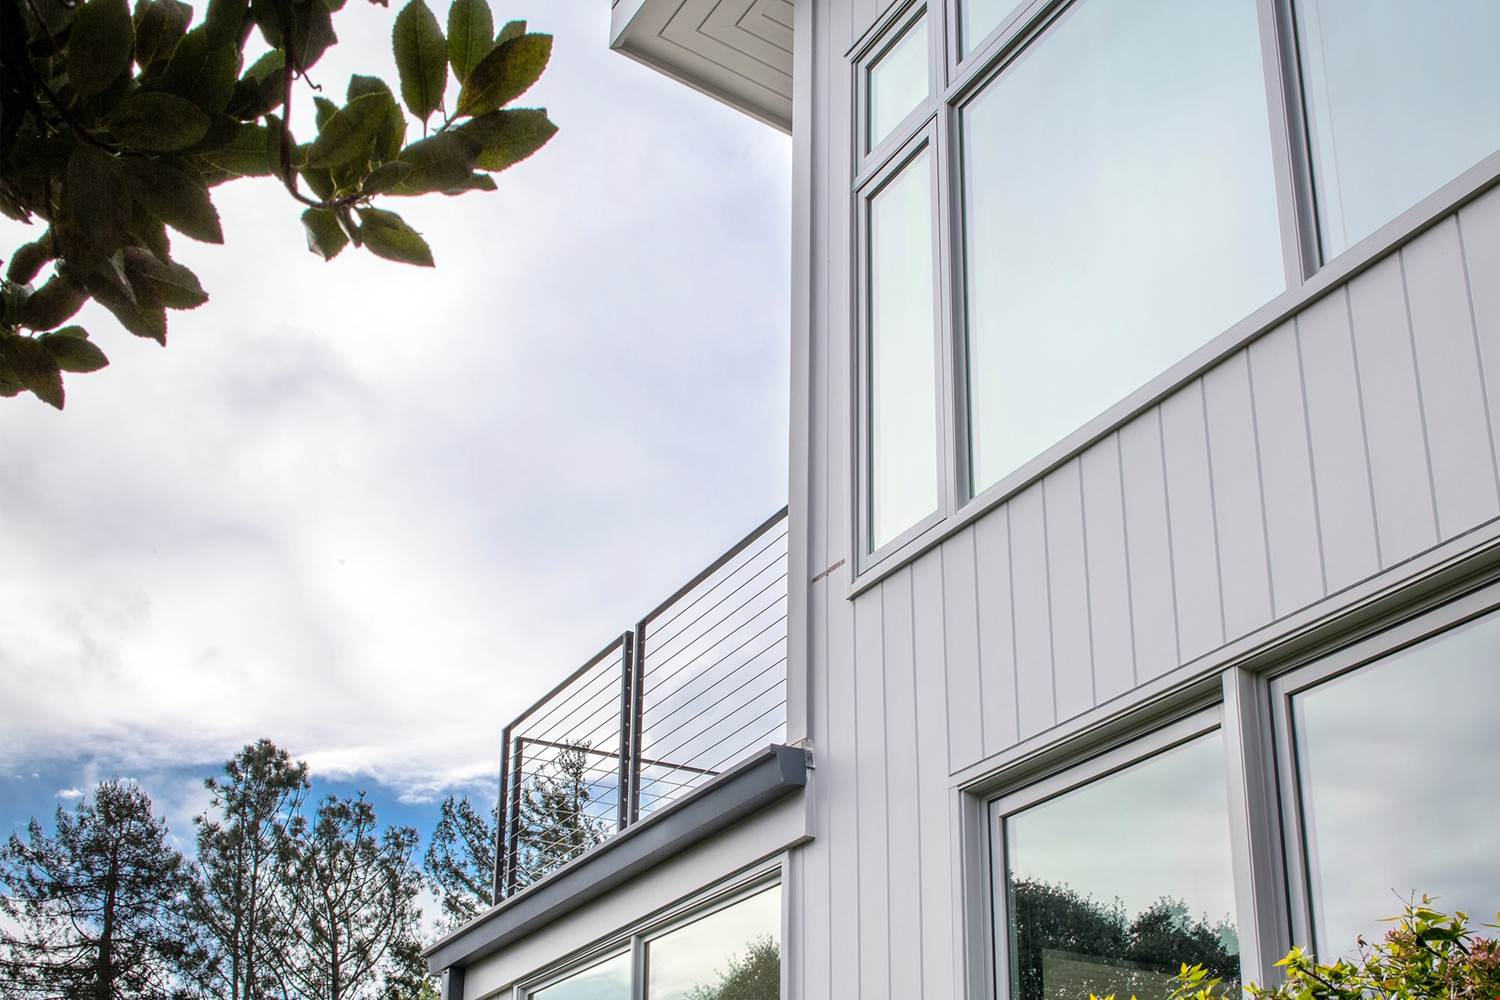 Residential Exterior Design Trends in 2019